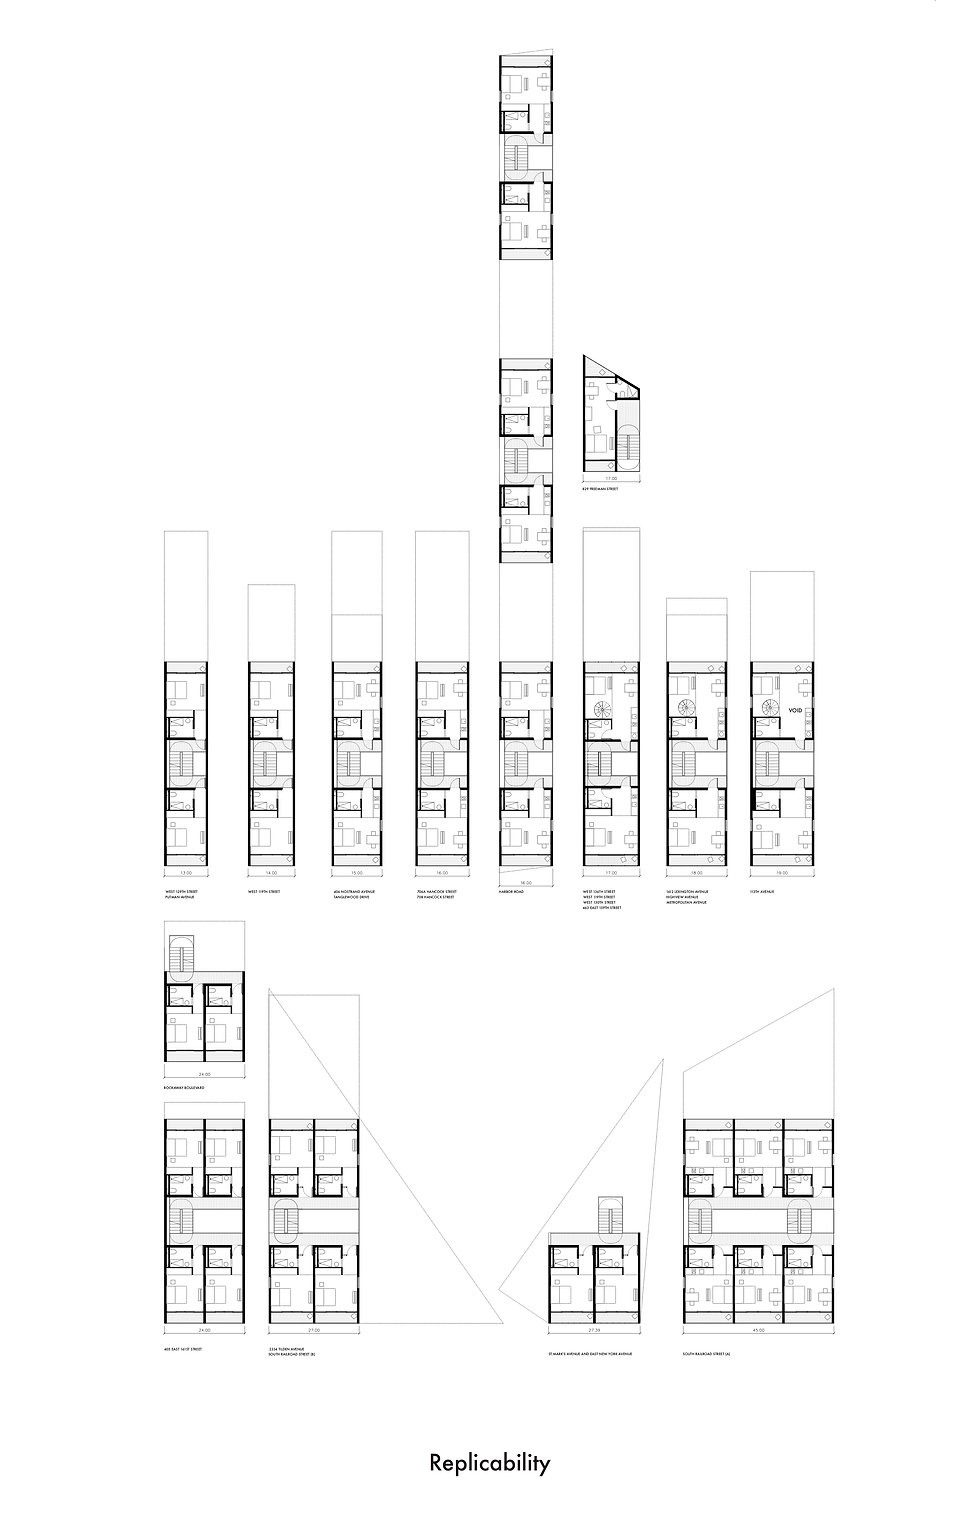 aabb-studio, aabb studio, Housing, Architecture, Juan José Barrios Avalos, Daniel Valdés Vigil, Big ideas for small lots